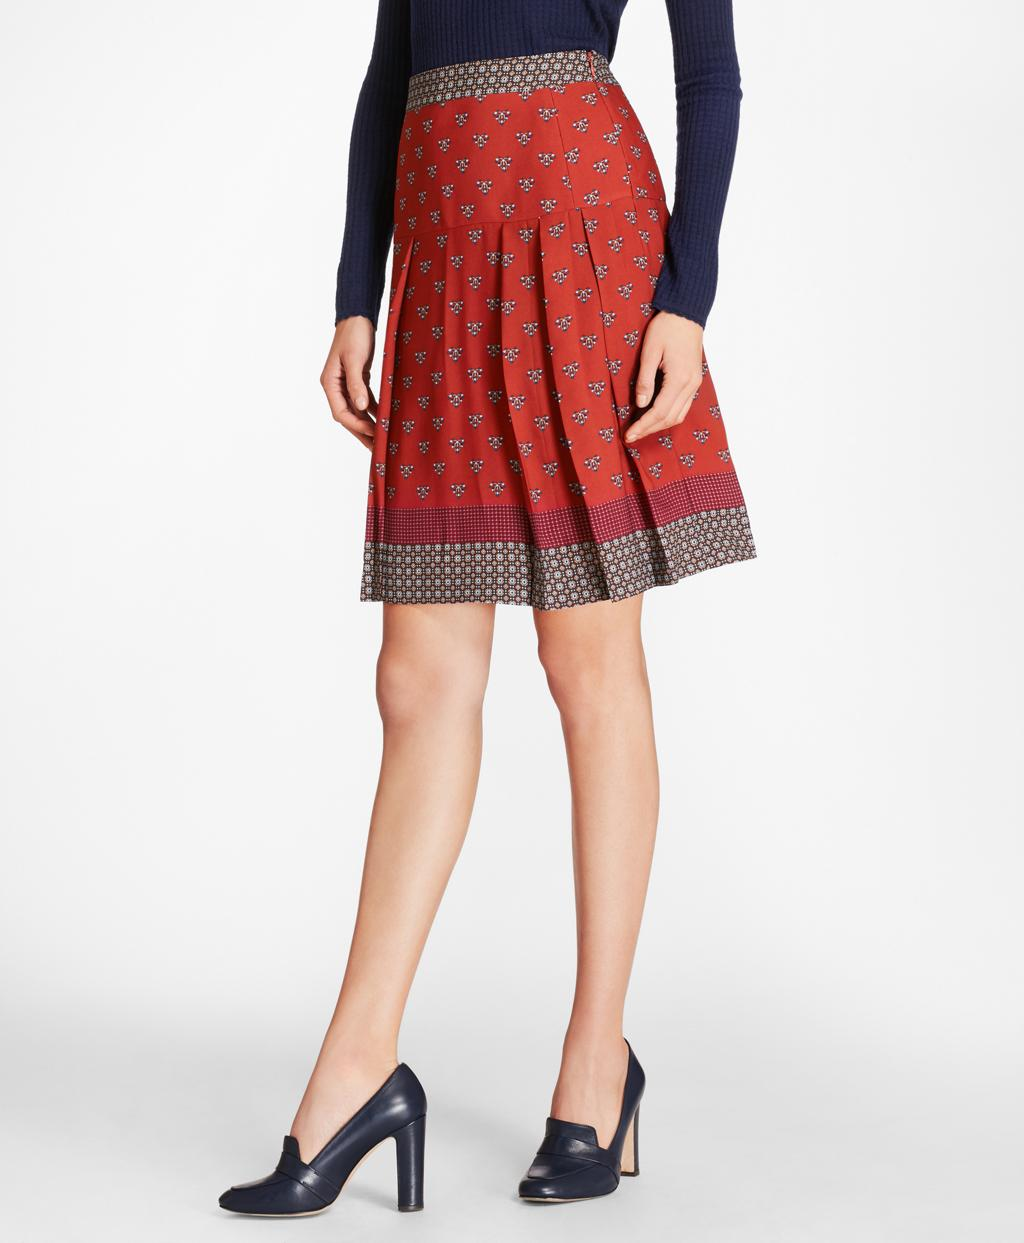 70229ab81 Lyst - Brooks Brothers Foulard Silk Georgette Pleated Skirt in Red ...